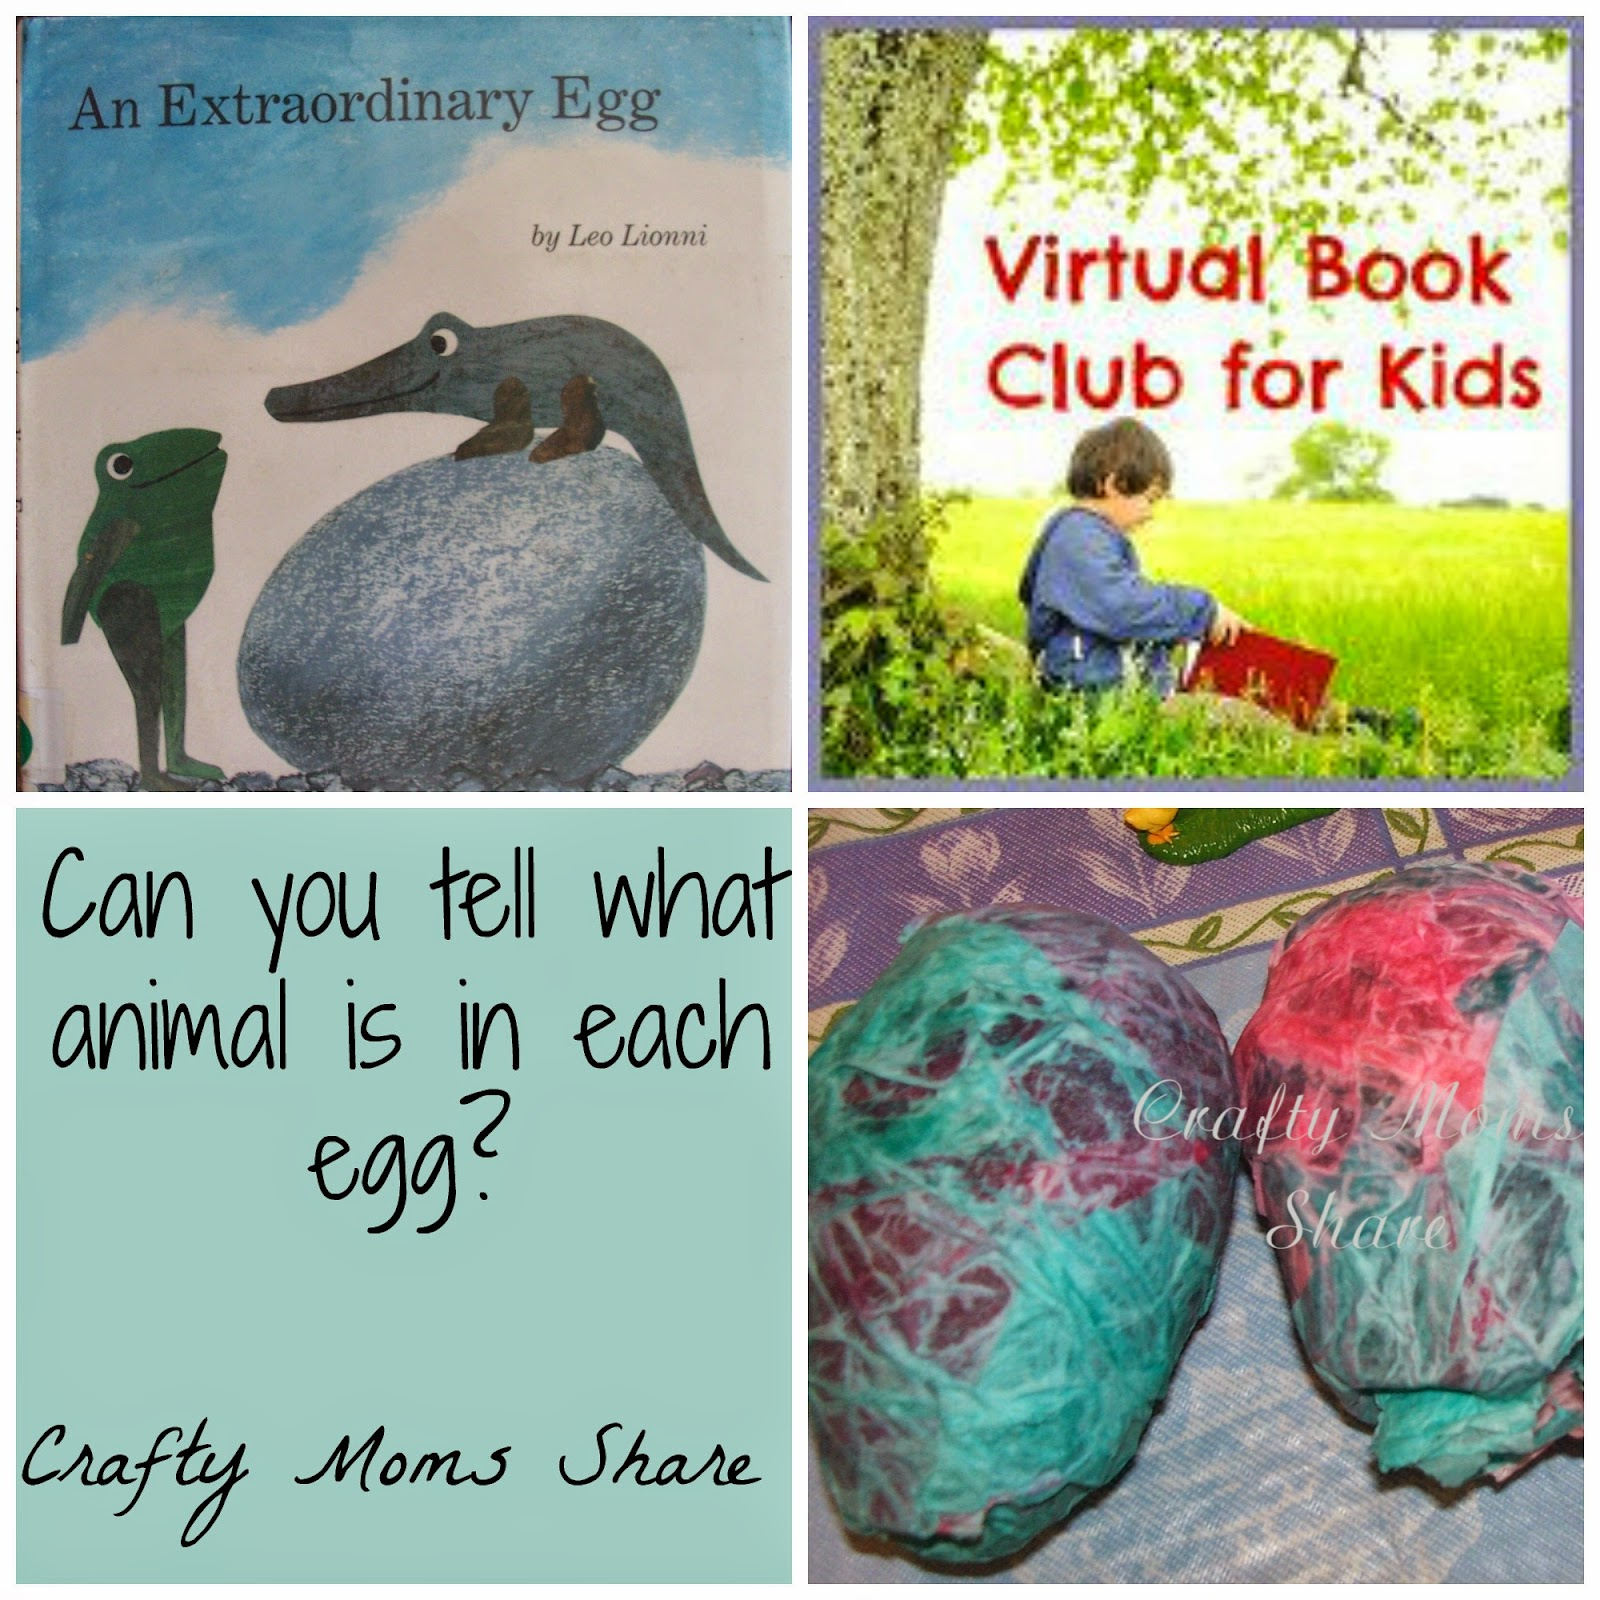 Crafty Moms Share Virtual Book Club For Kids